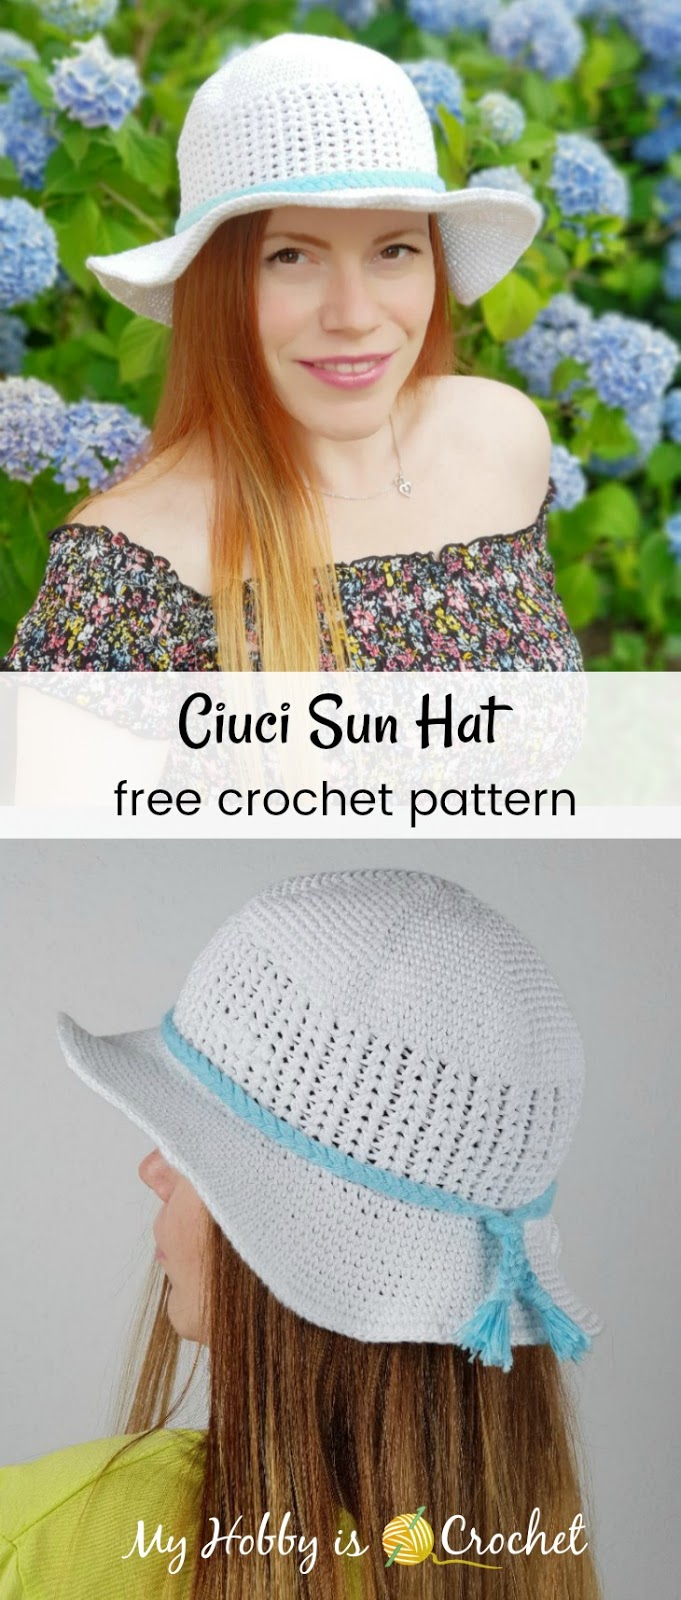 Ciuci Sun Hat - Free Crochet Pattern on myhobbyiscrochet.com